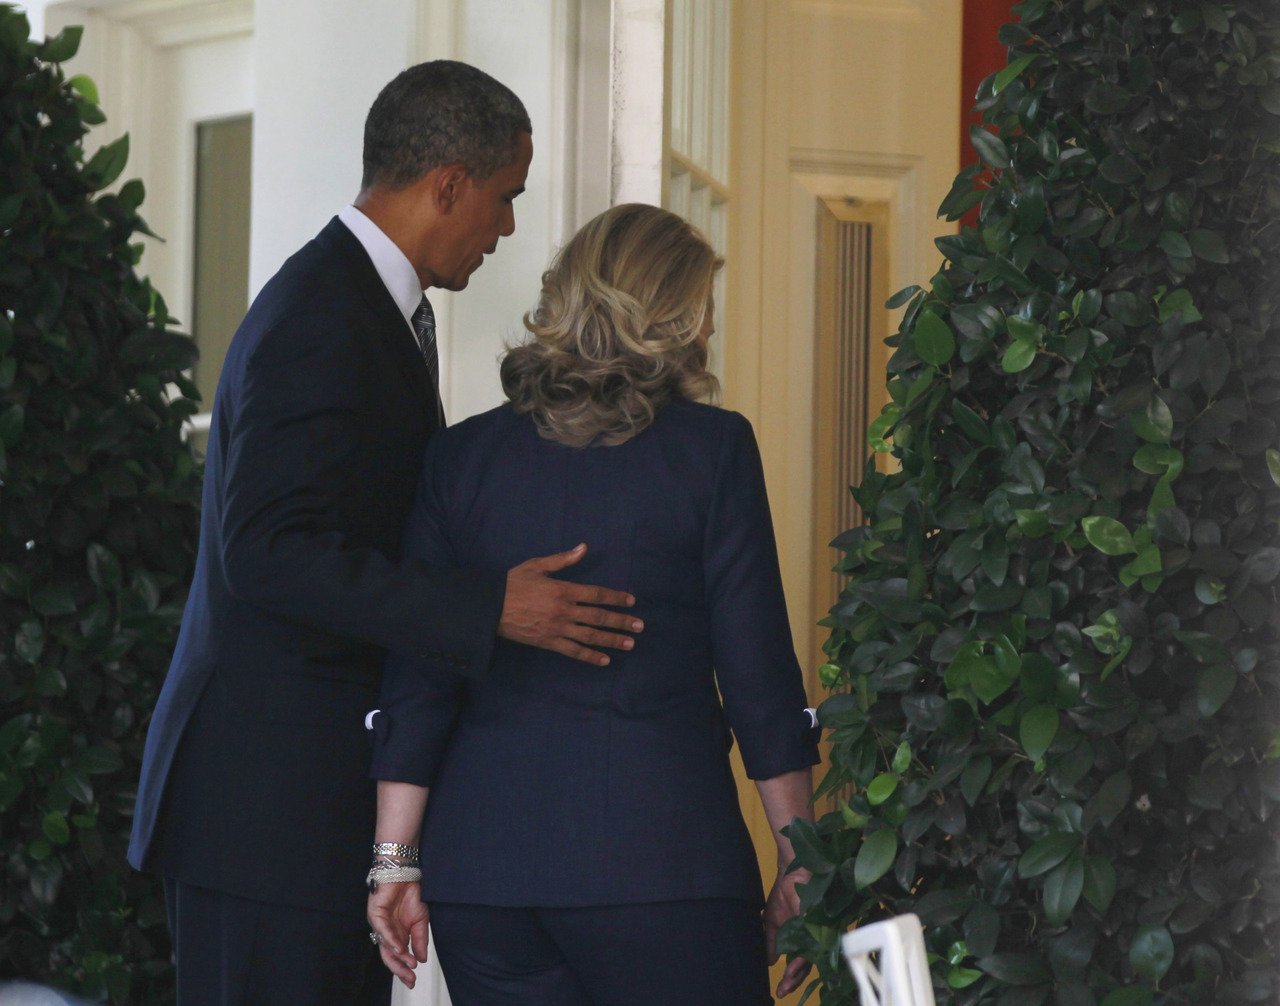 U.S. President Barack Obama and Secretary of State Hillary Clinton walk back into the Oval Office after Obama delivered remarks following the death of the U.S. Ambassador to Libya, Chris Stevens, and others, in the Rose Garden of the White House in Washington, September 12, 2012. [REUTERS/Jason Reed]